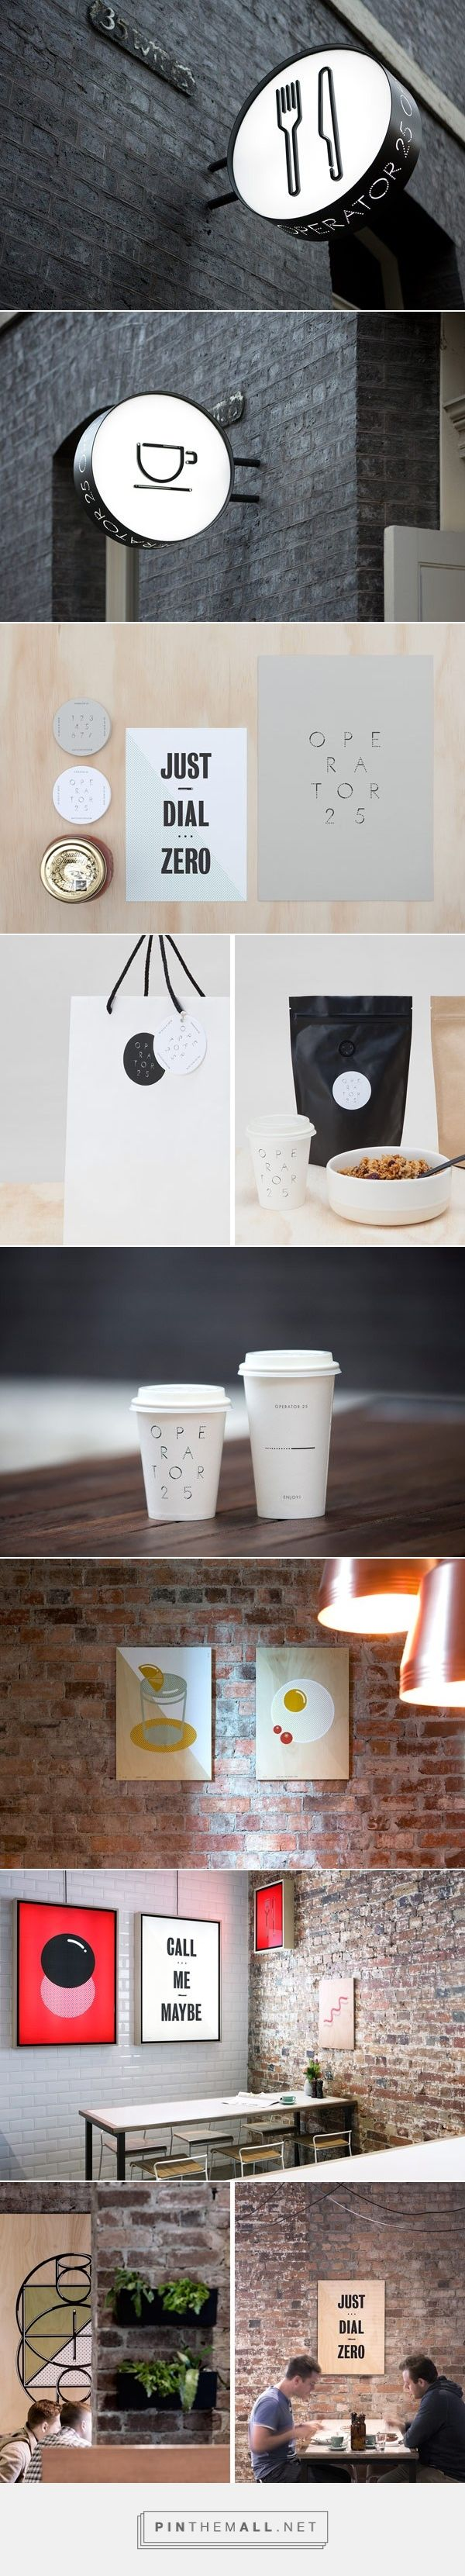 Operator 25 Cafe – Brand Design by Studio Pop & Pac